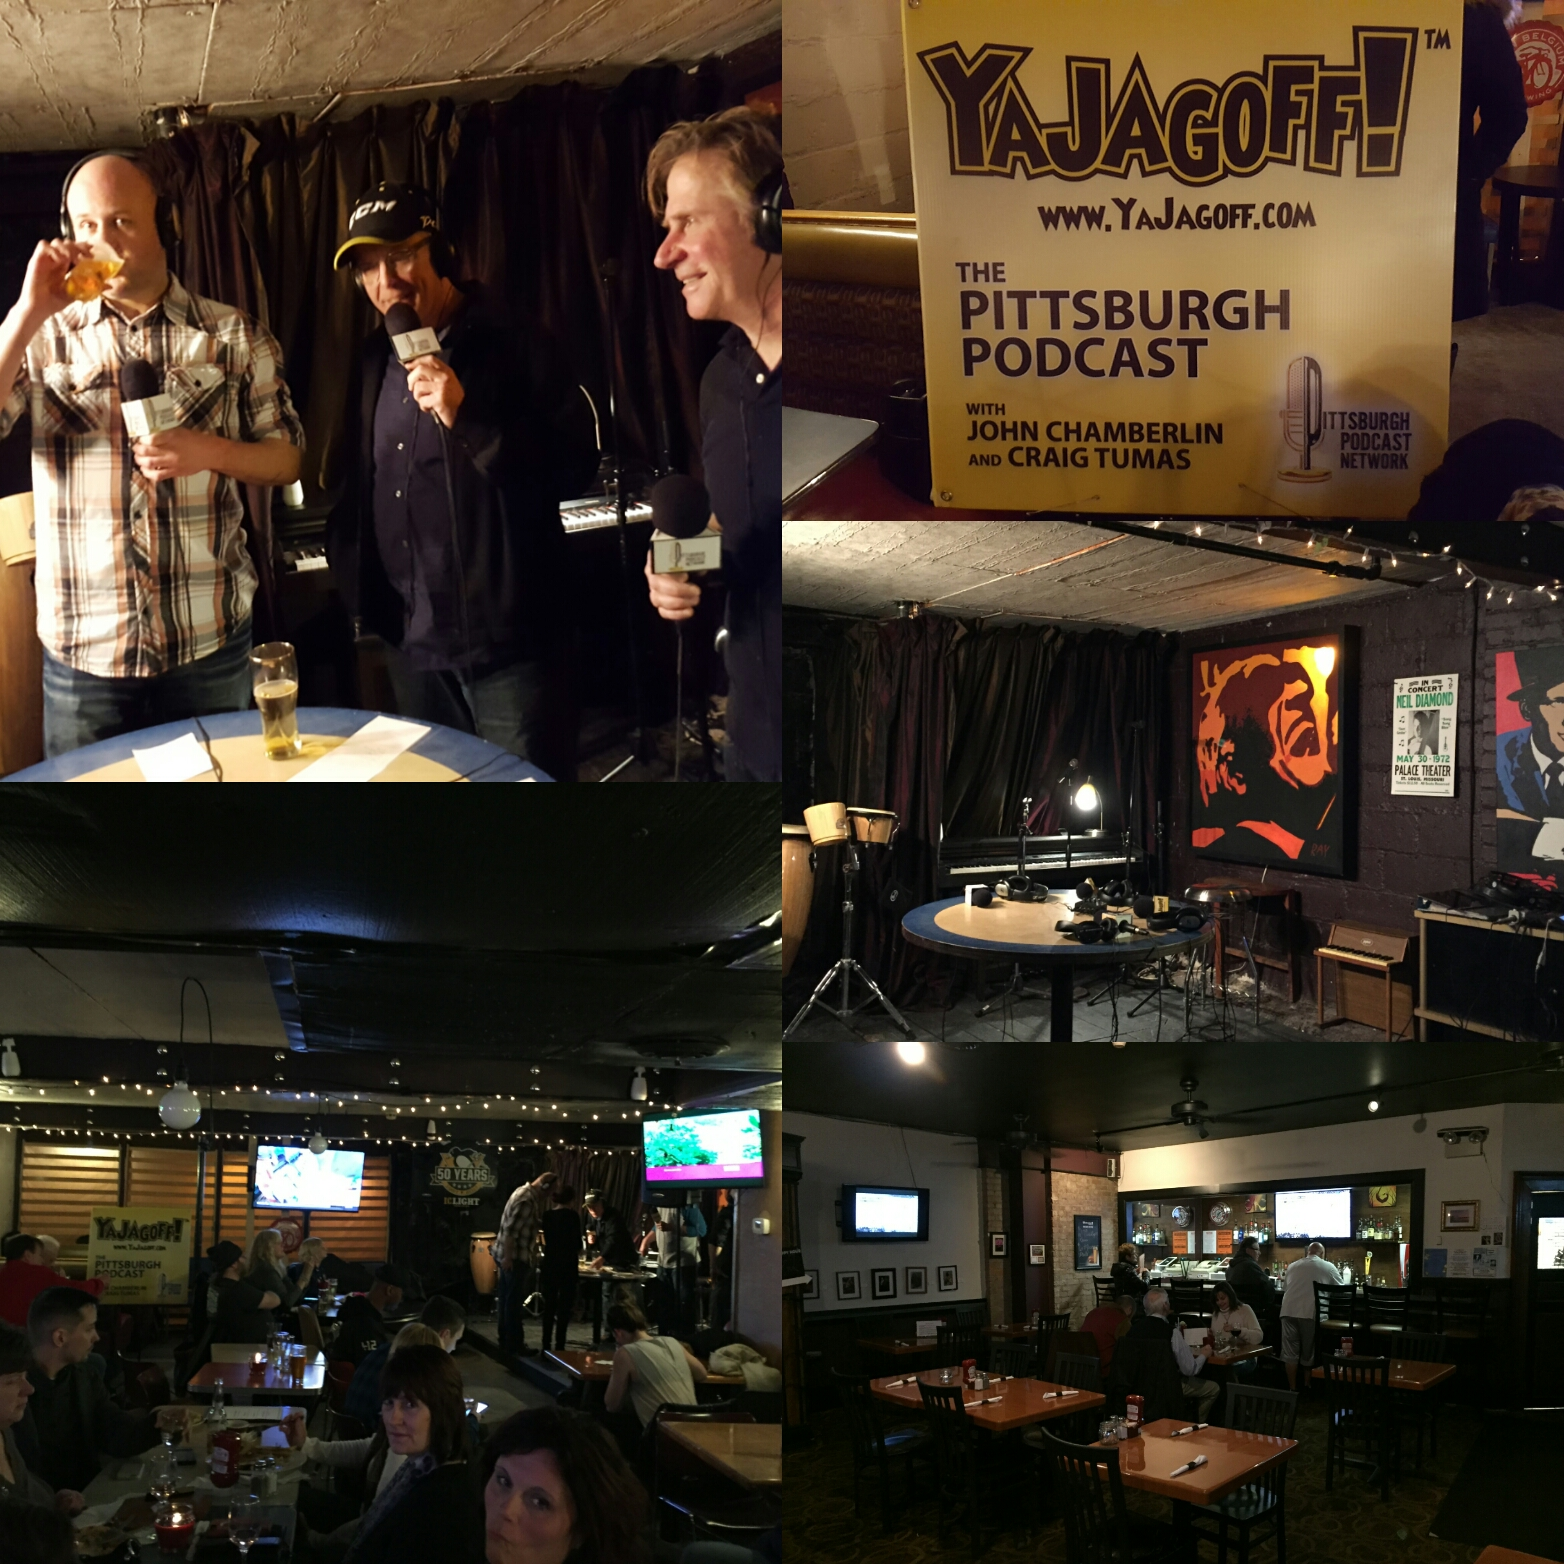 YaJagoff Podcast Episode 55, Remembering First Drinks at 565 Live in Bellevue